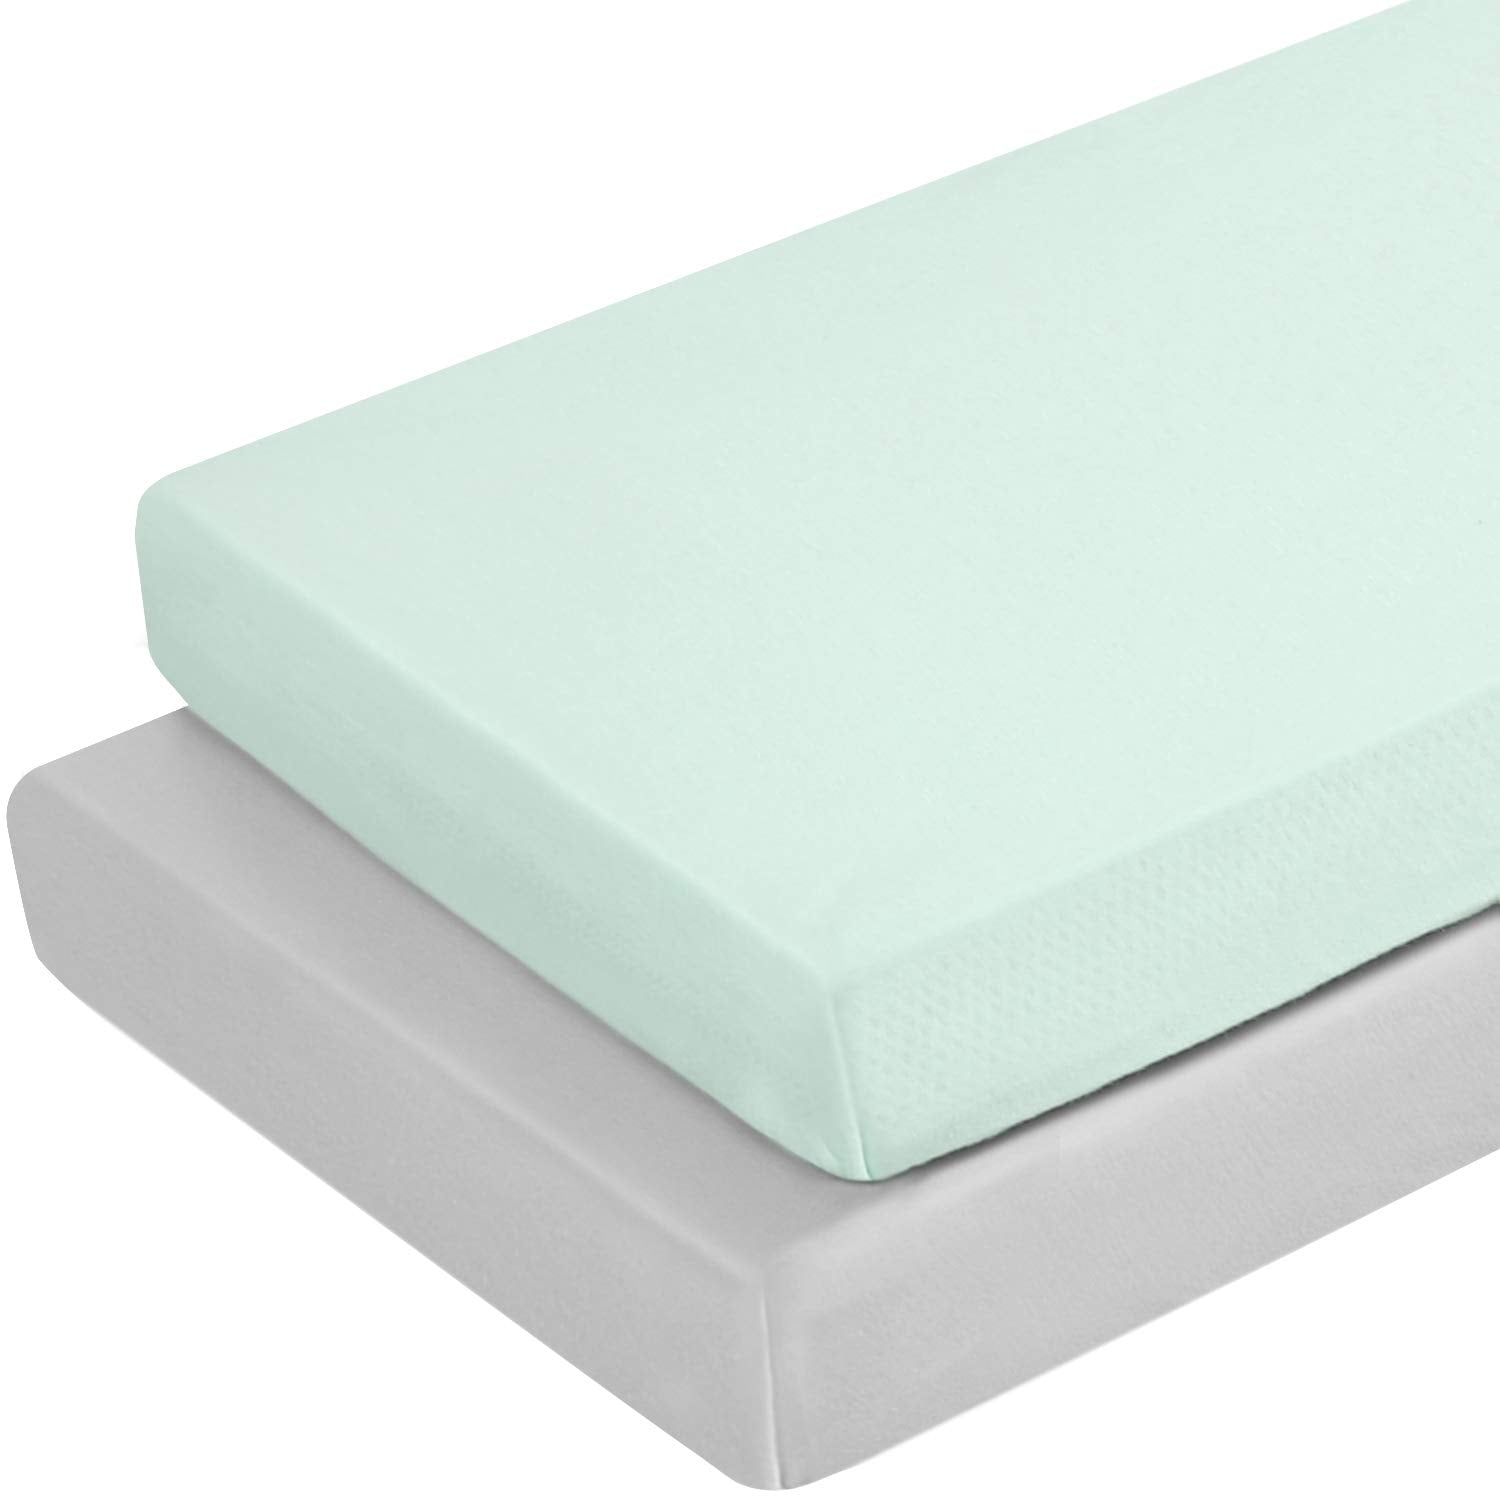 2 Piece - Jersey Knit Mini Portable Crib Sheets,Light Green & Light Gray